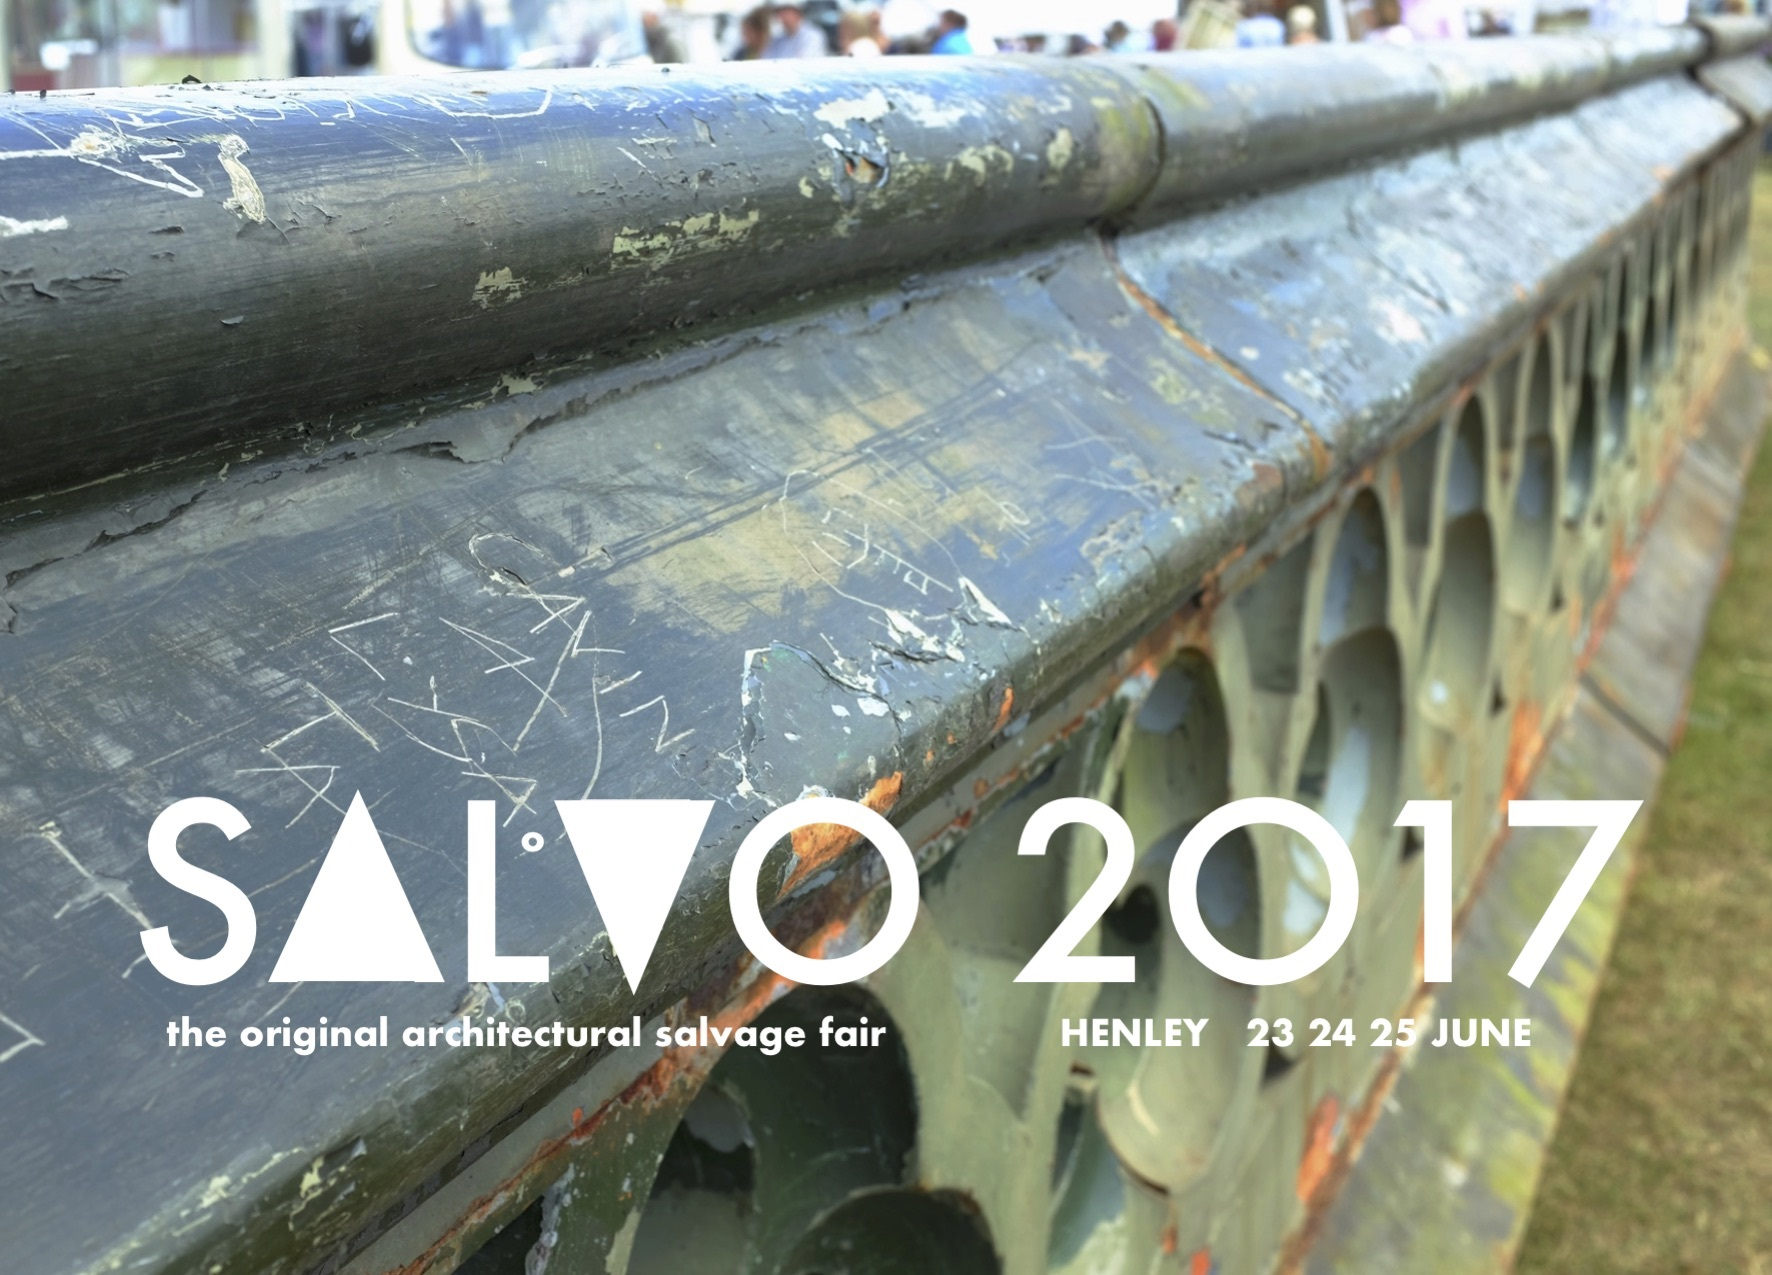 Antiques News - Antiques Fair - Salvo Fair 2017